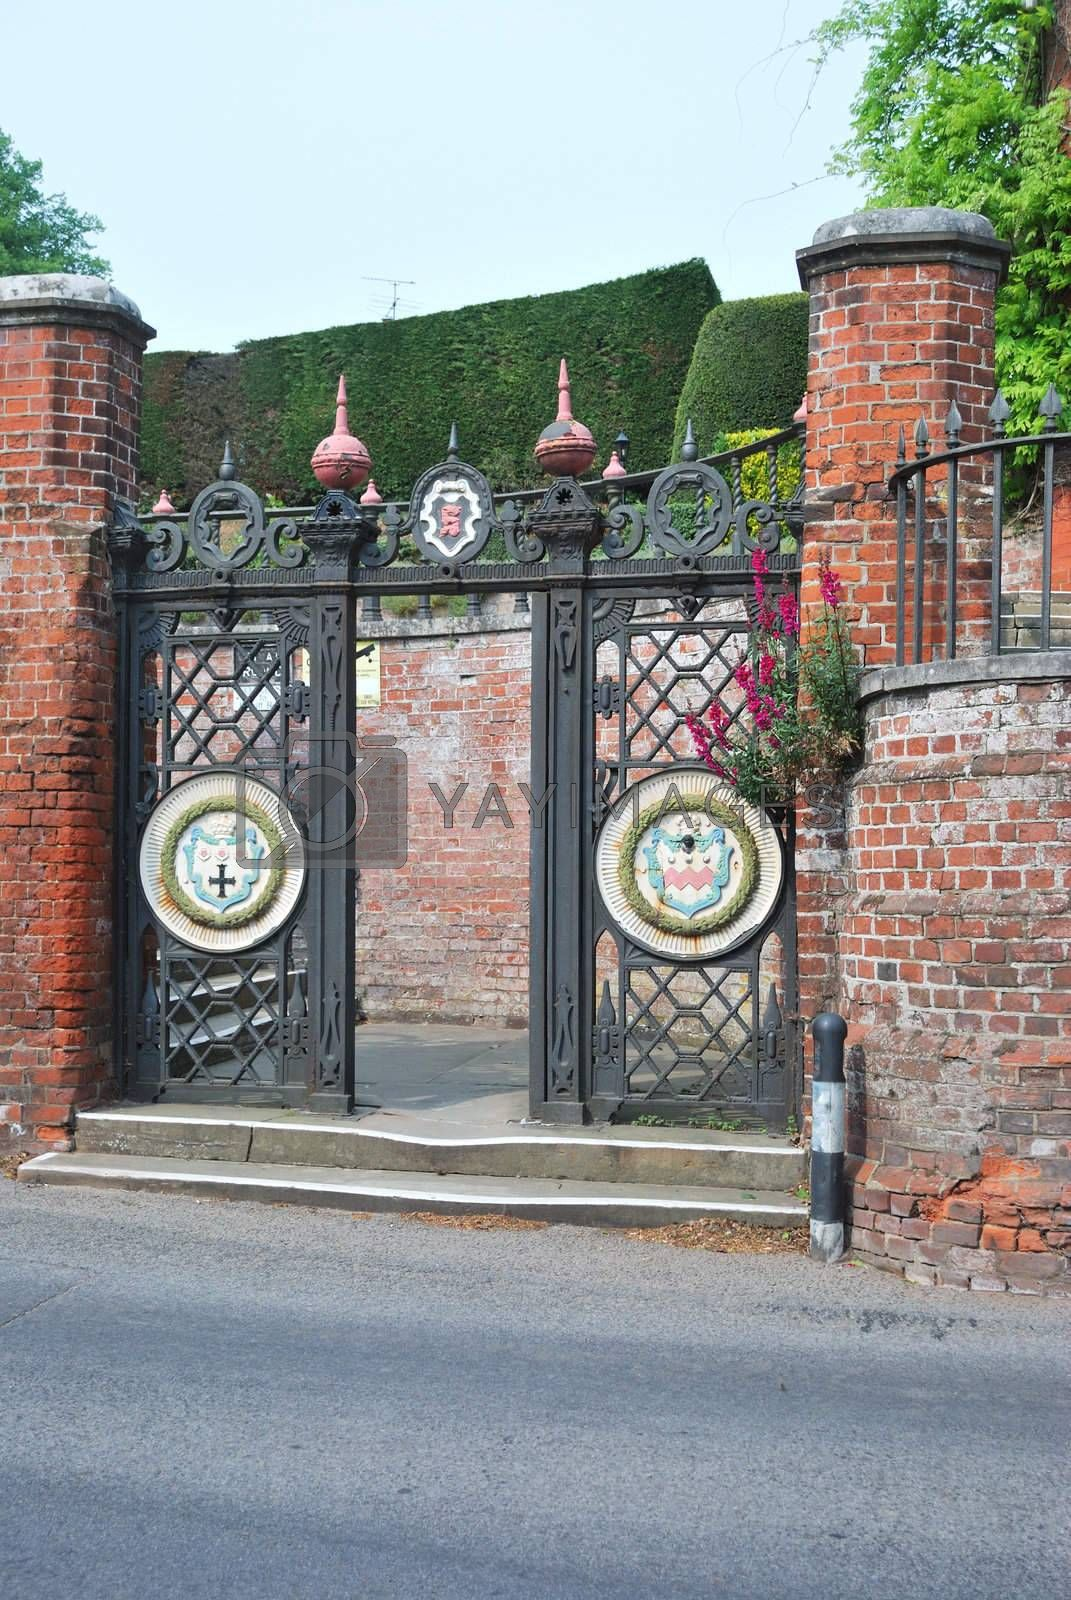 Wrought iron gates showing seckford coat of arms